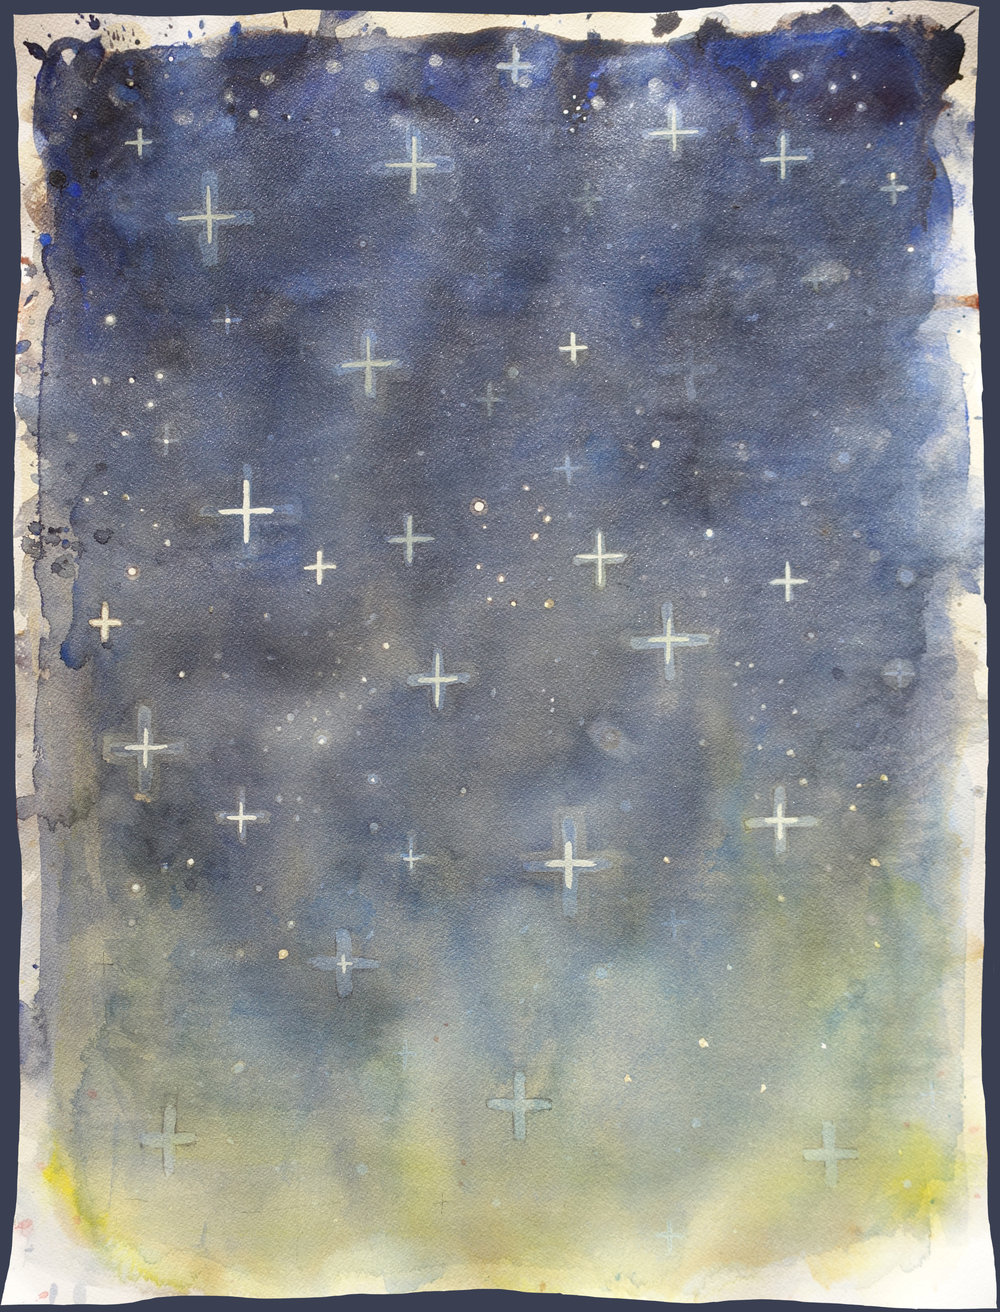 "Any Sky, Number 2   Watercolor on 140# Arches  WC Paper 24"" x 18"" (60.96cm x 45.72cm)  © 2018 SP"